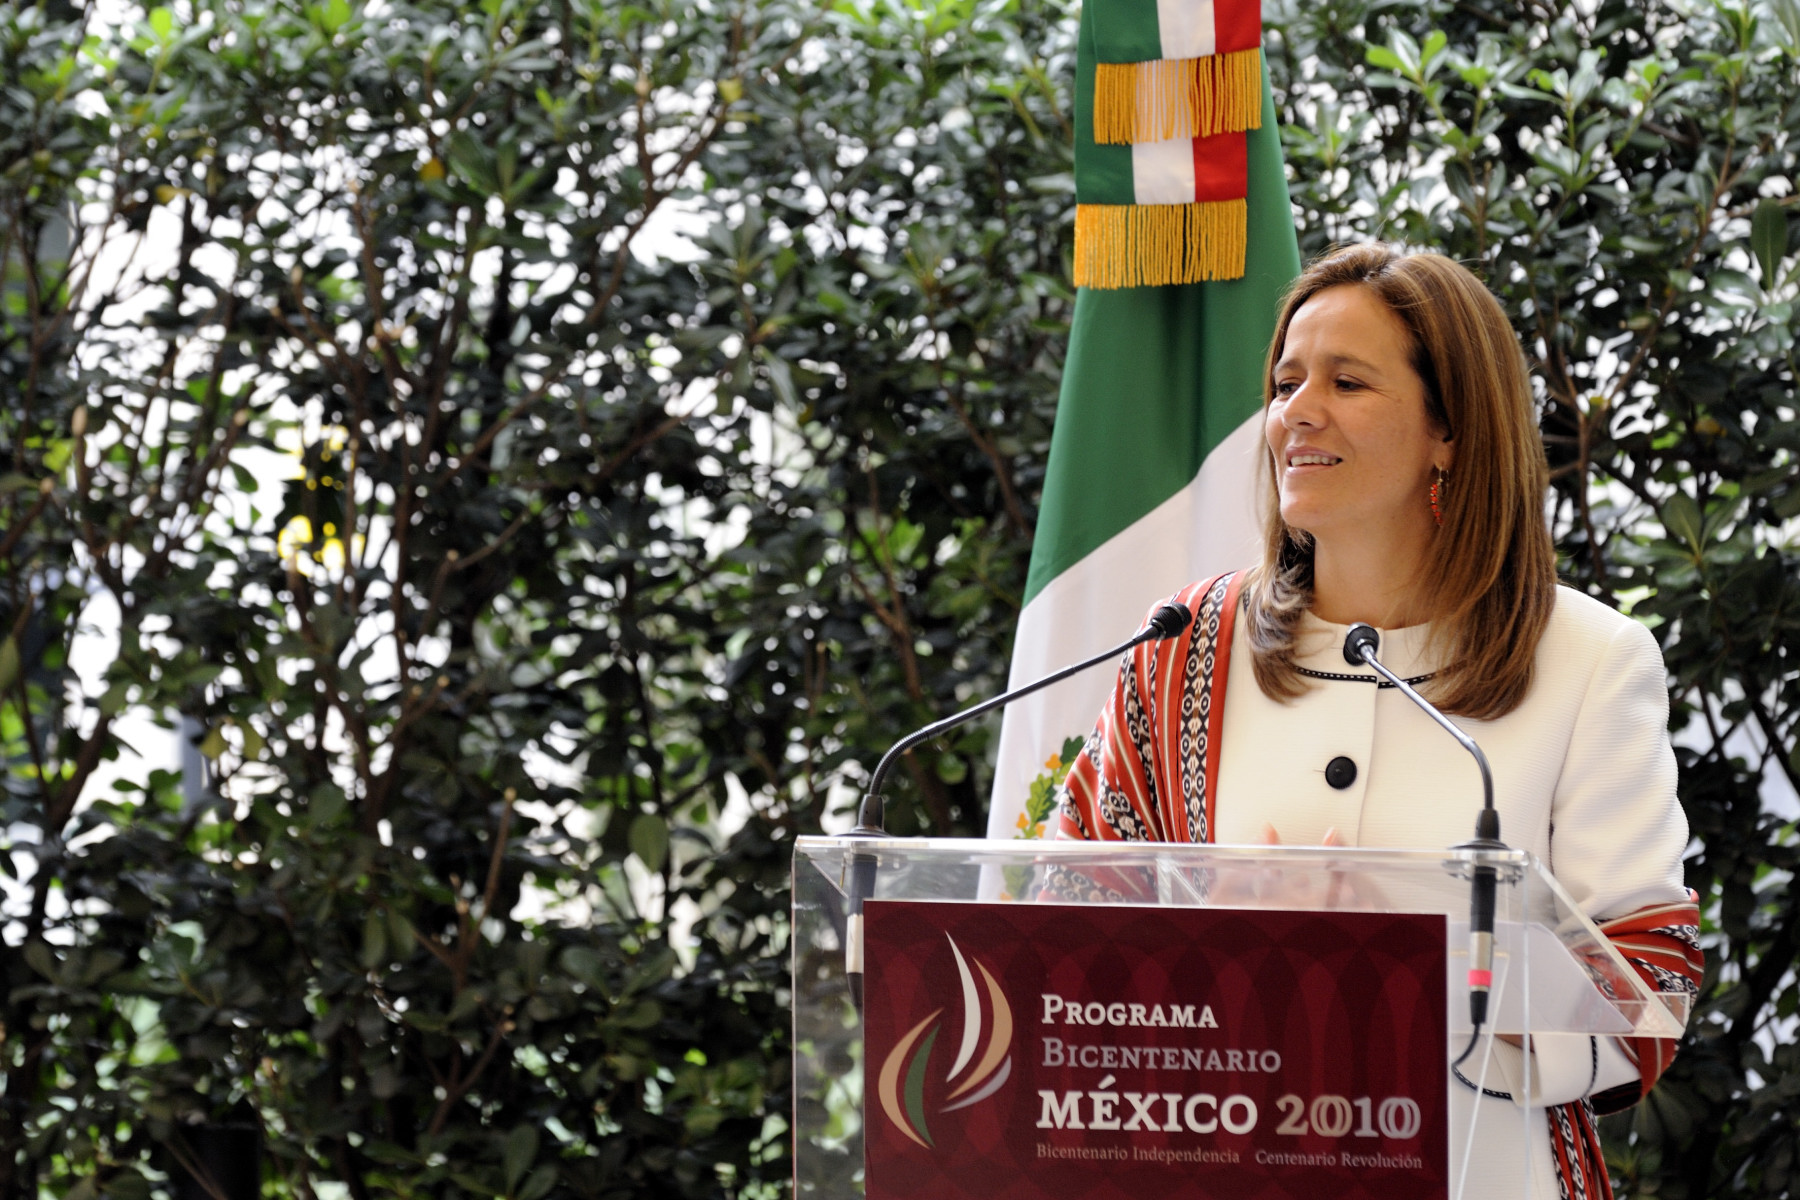 The First Lady of the United Mexican States Margarita Zavala delivered a speech in the gardens of the National Museum of Anthropology and History.